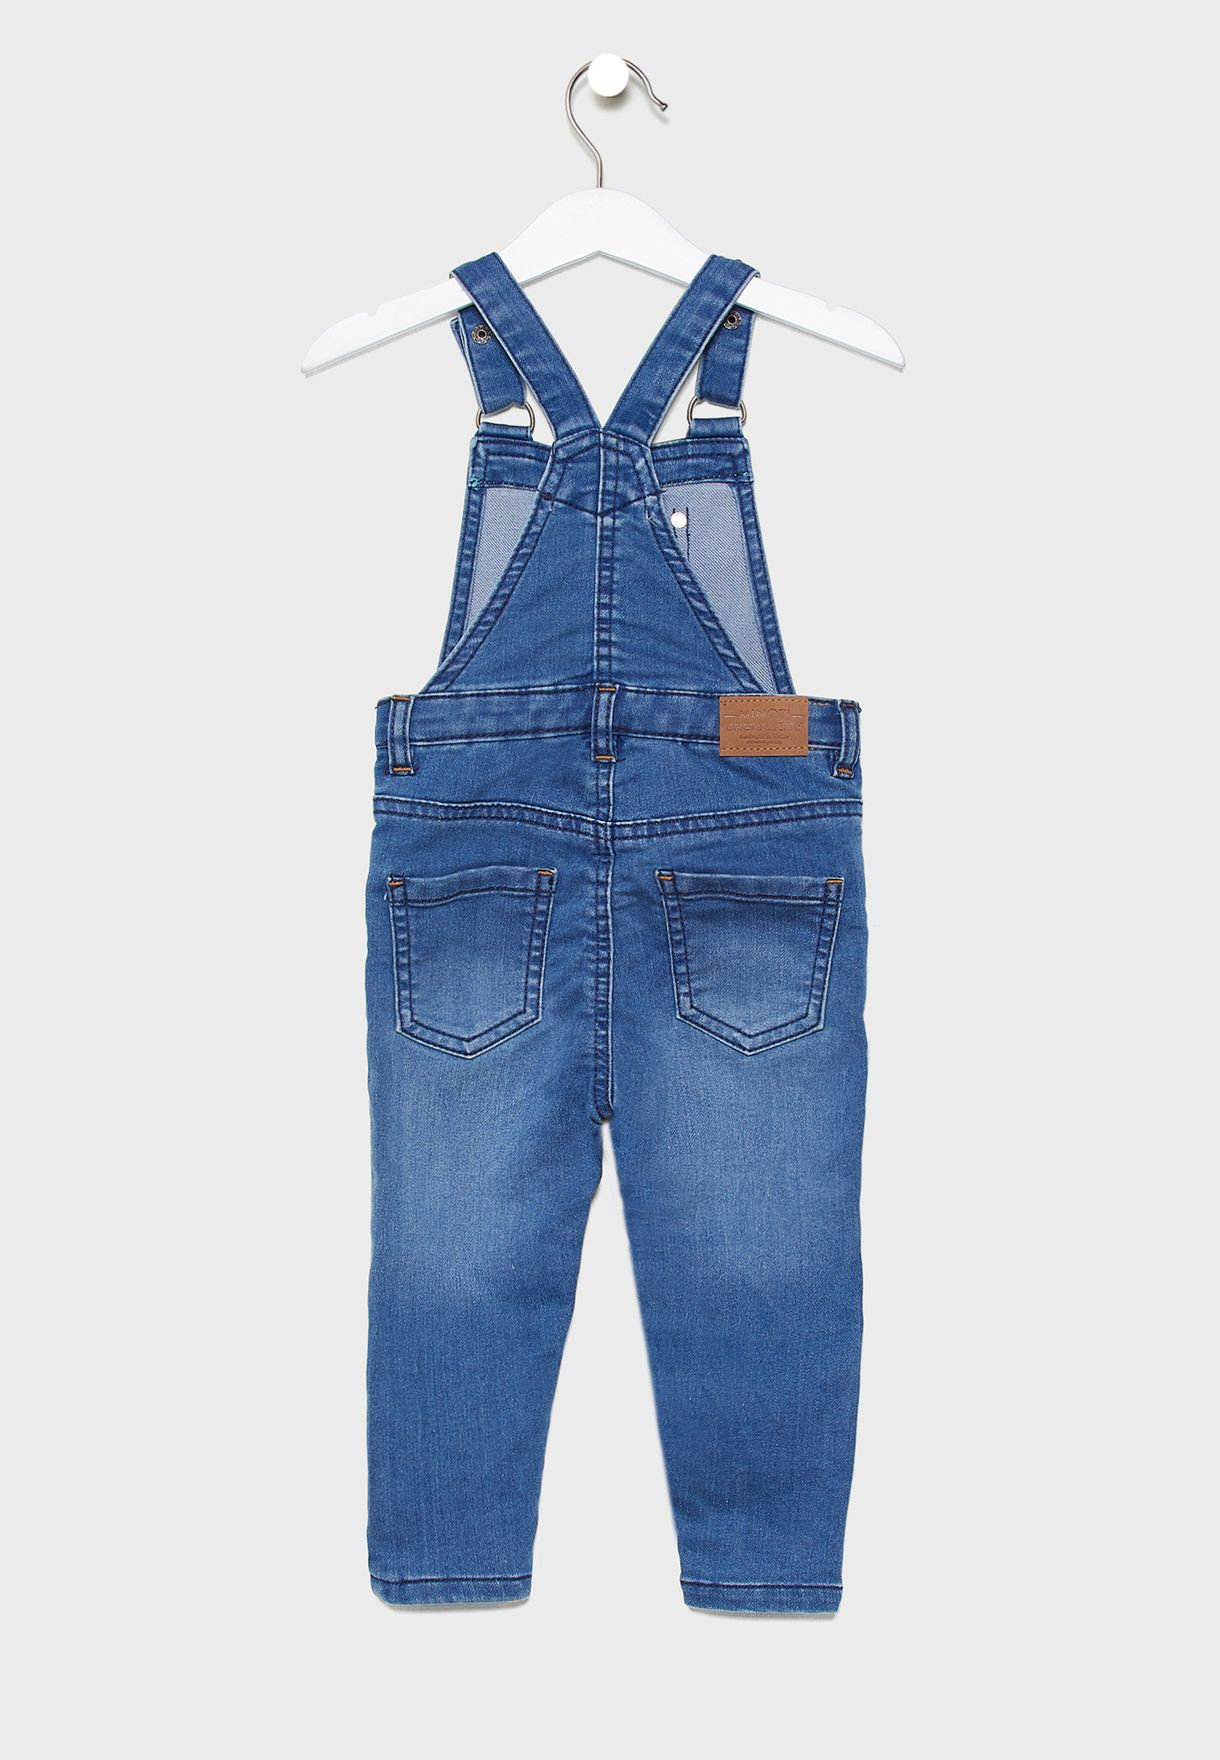 Kids Striped T-Shirt+Denim Dungaree Set